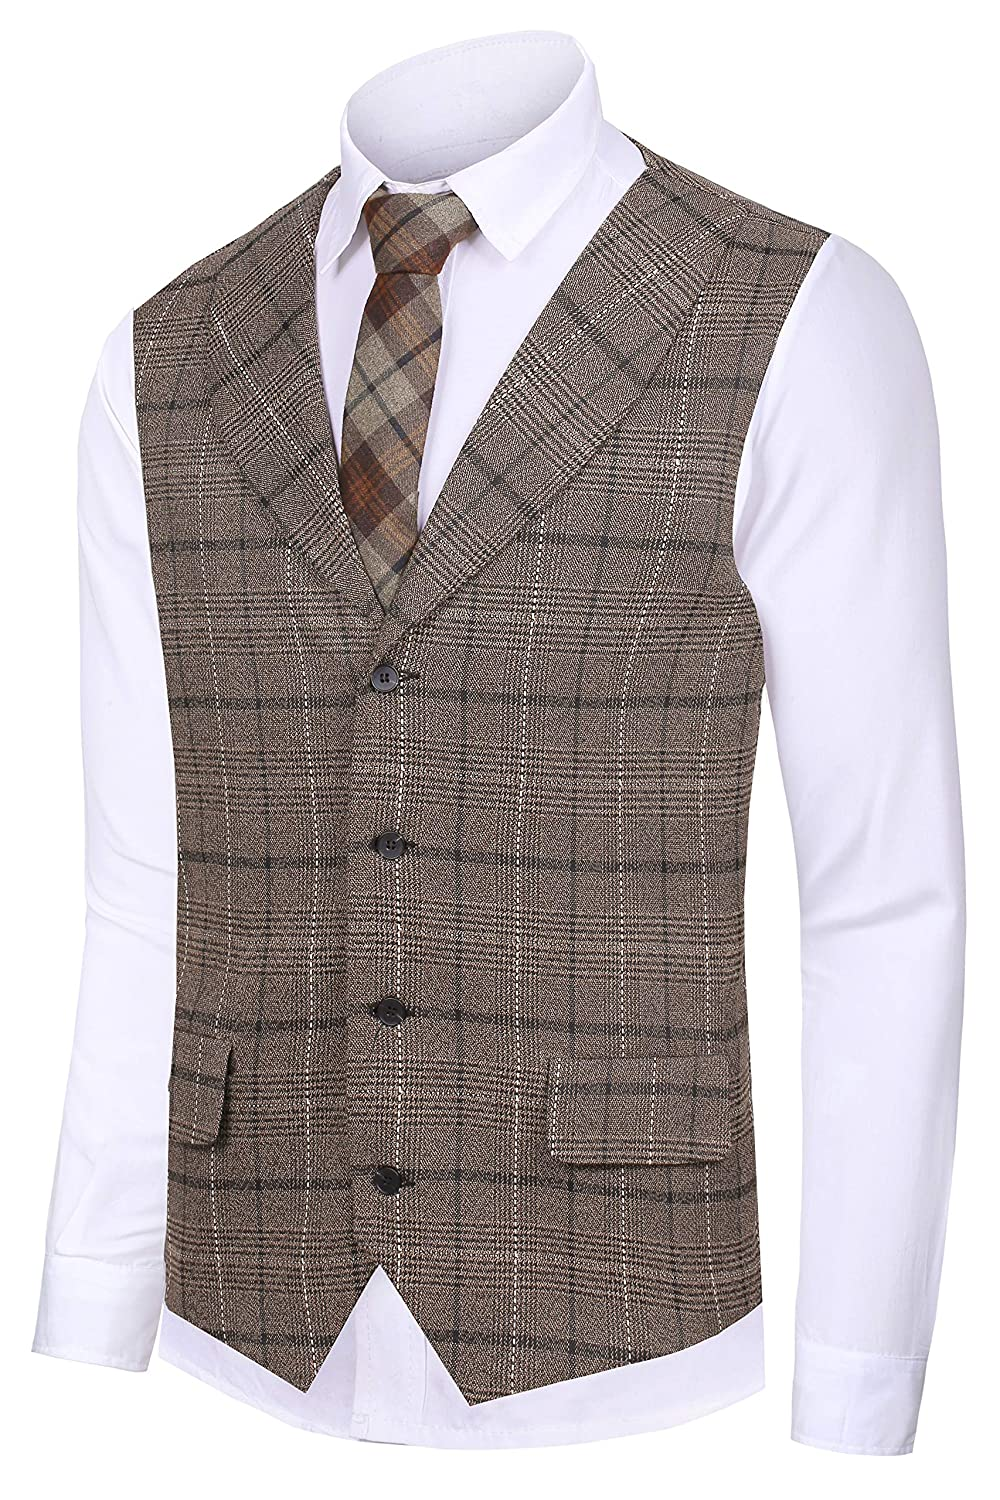 1920s Style Mens Vests Hanayome Mens Gentleman Top Design Casual Waistcoat Business Suit Vest VS17 $29.90 AT vintagedancer.com